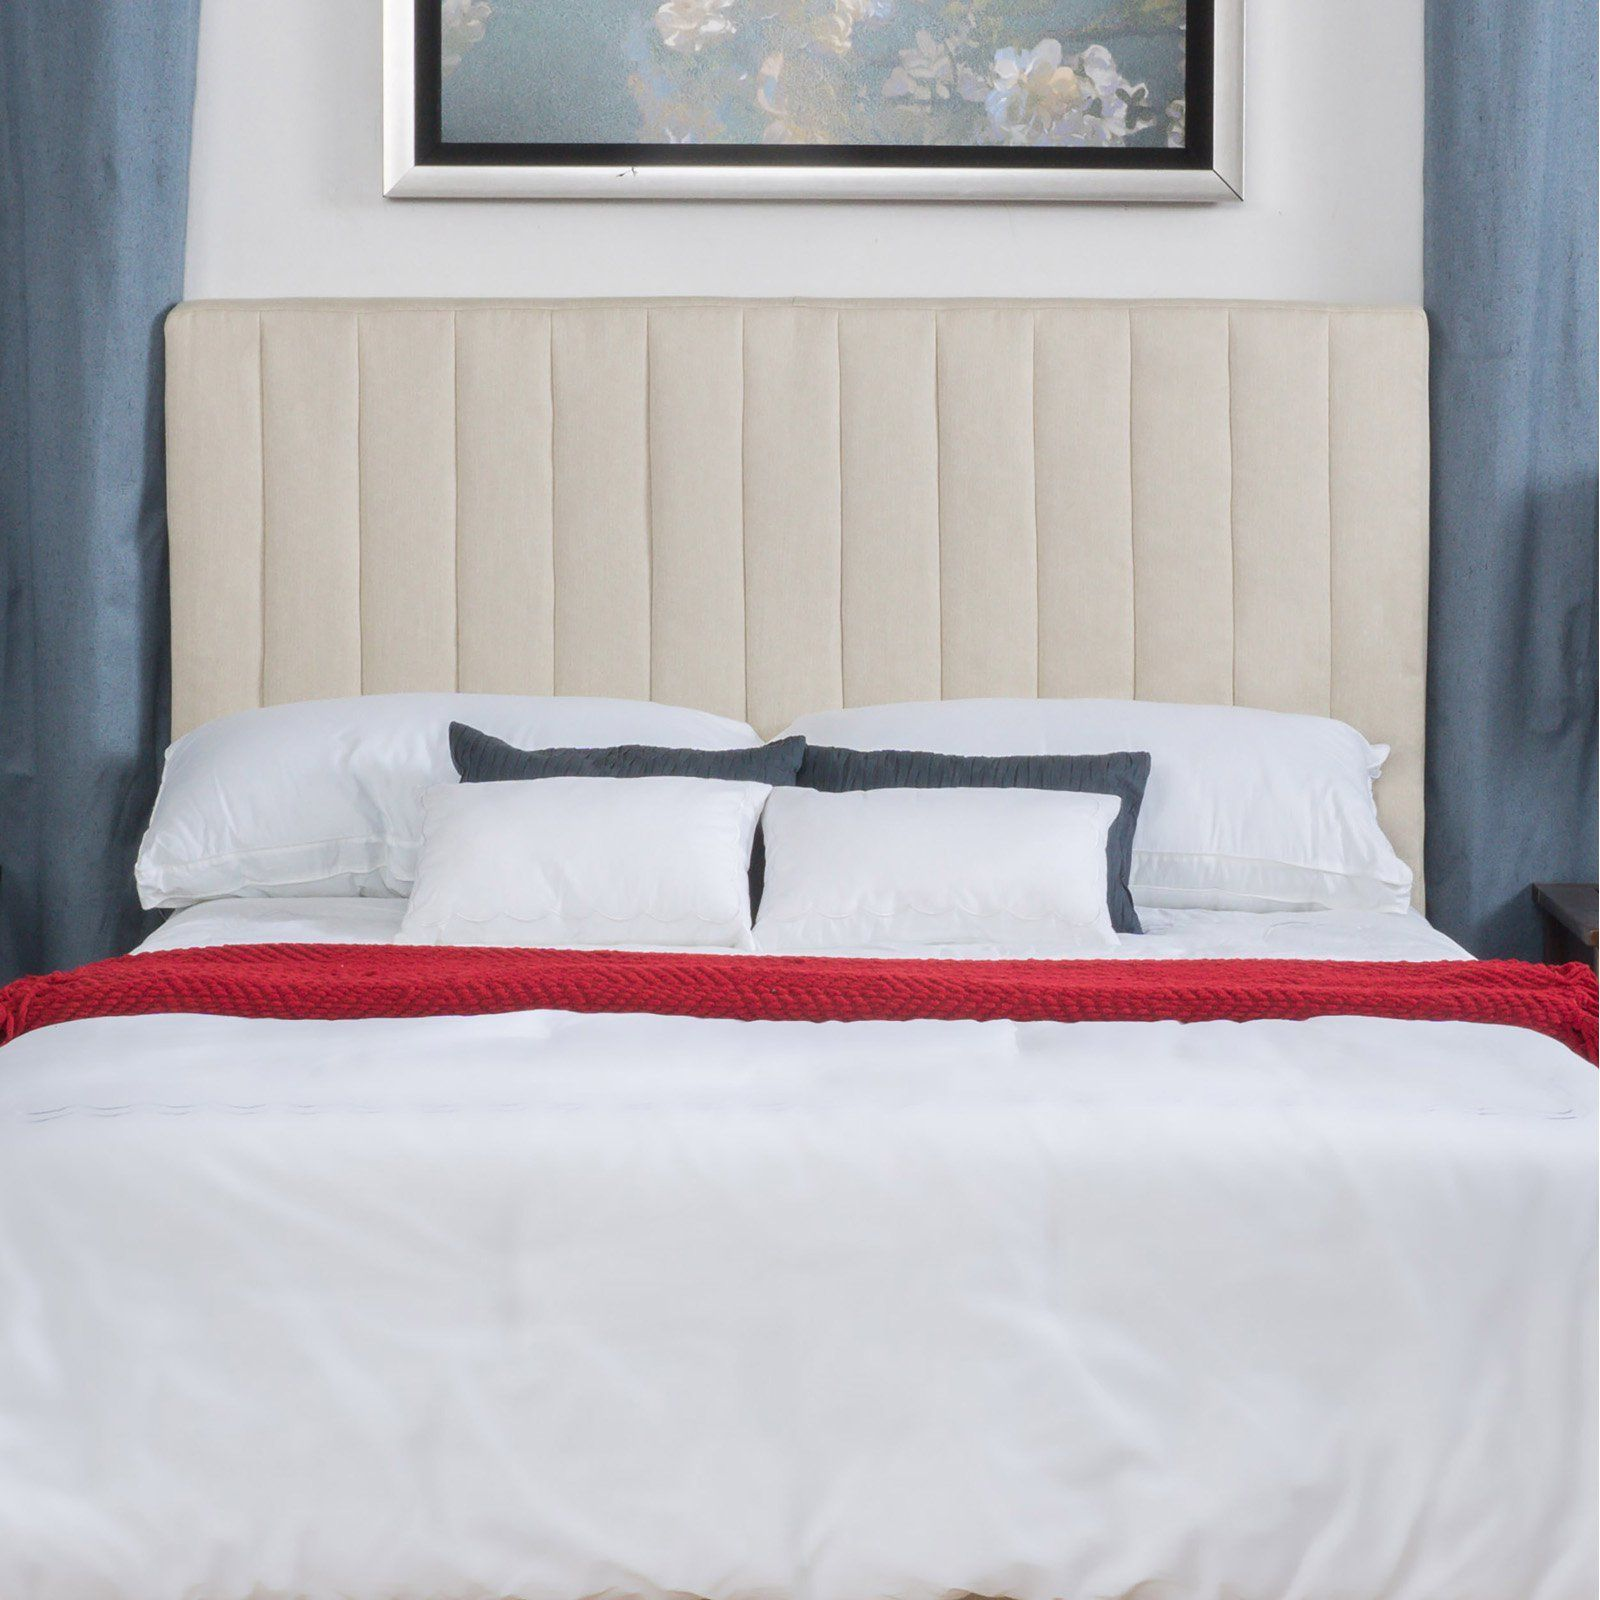 Best selling home perrone upholstered headboard products